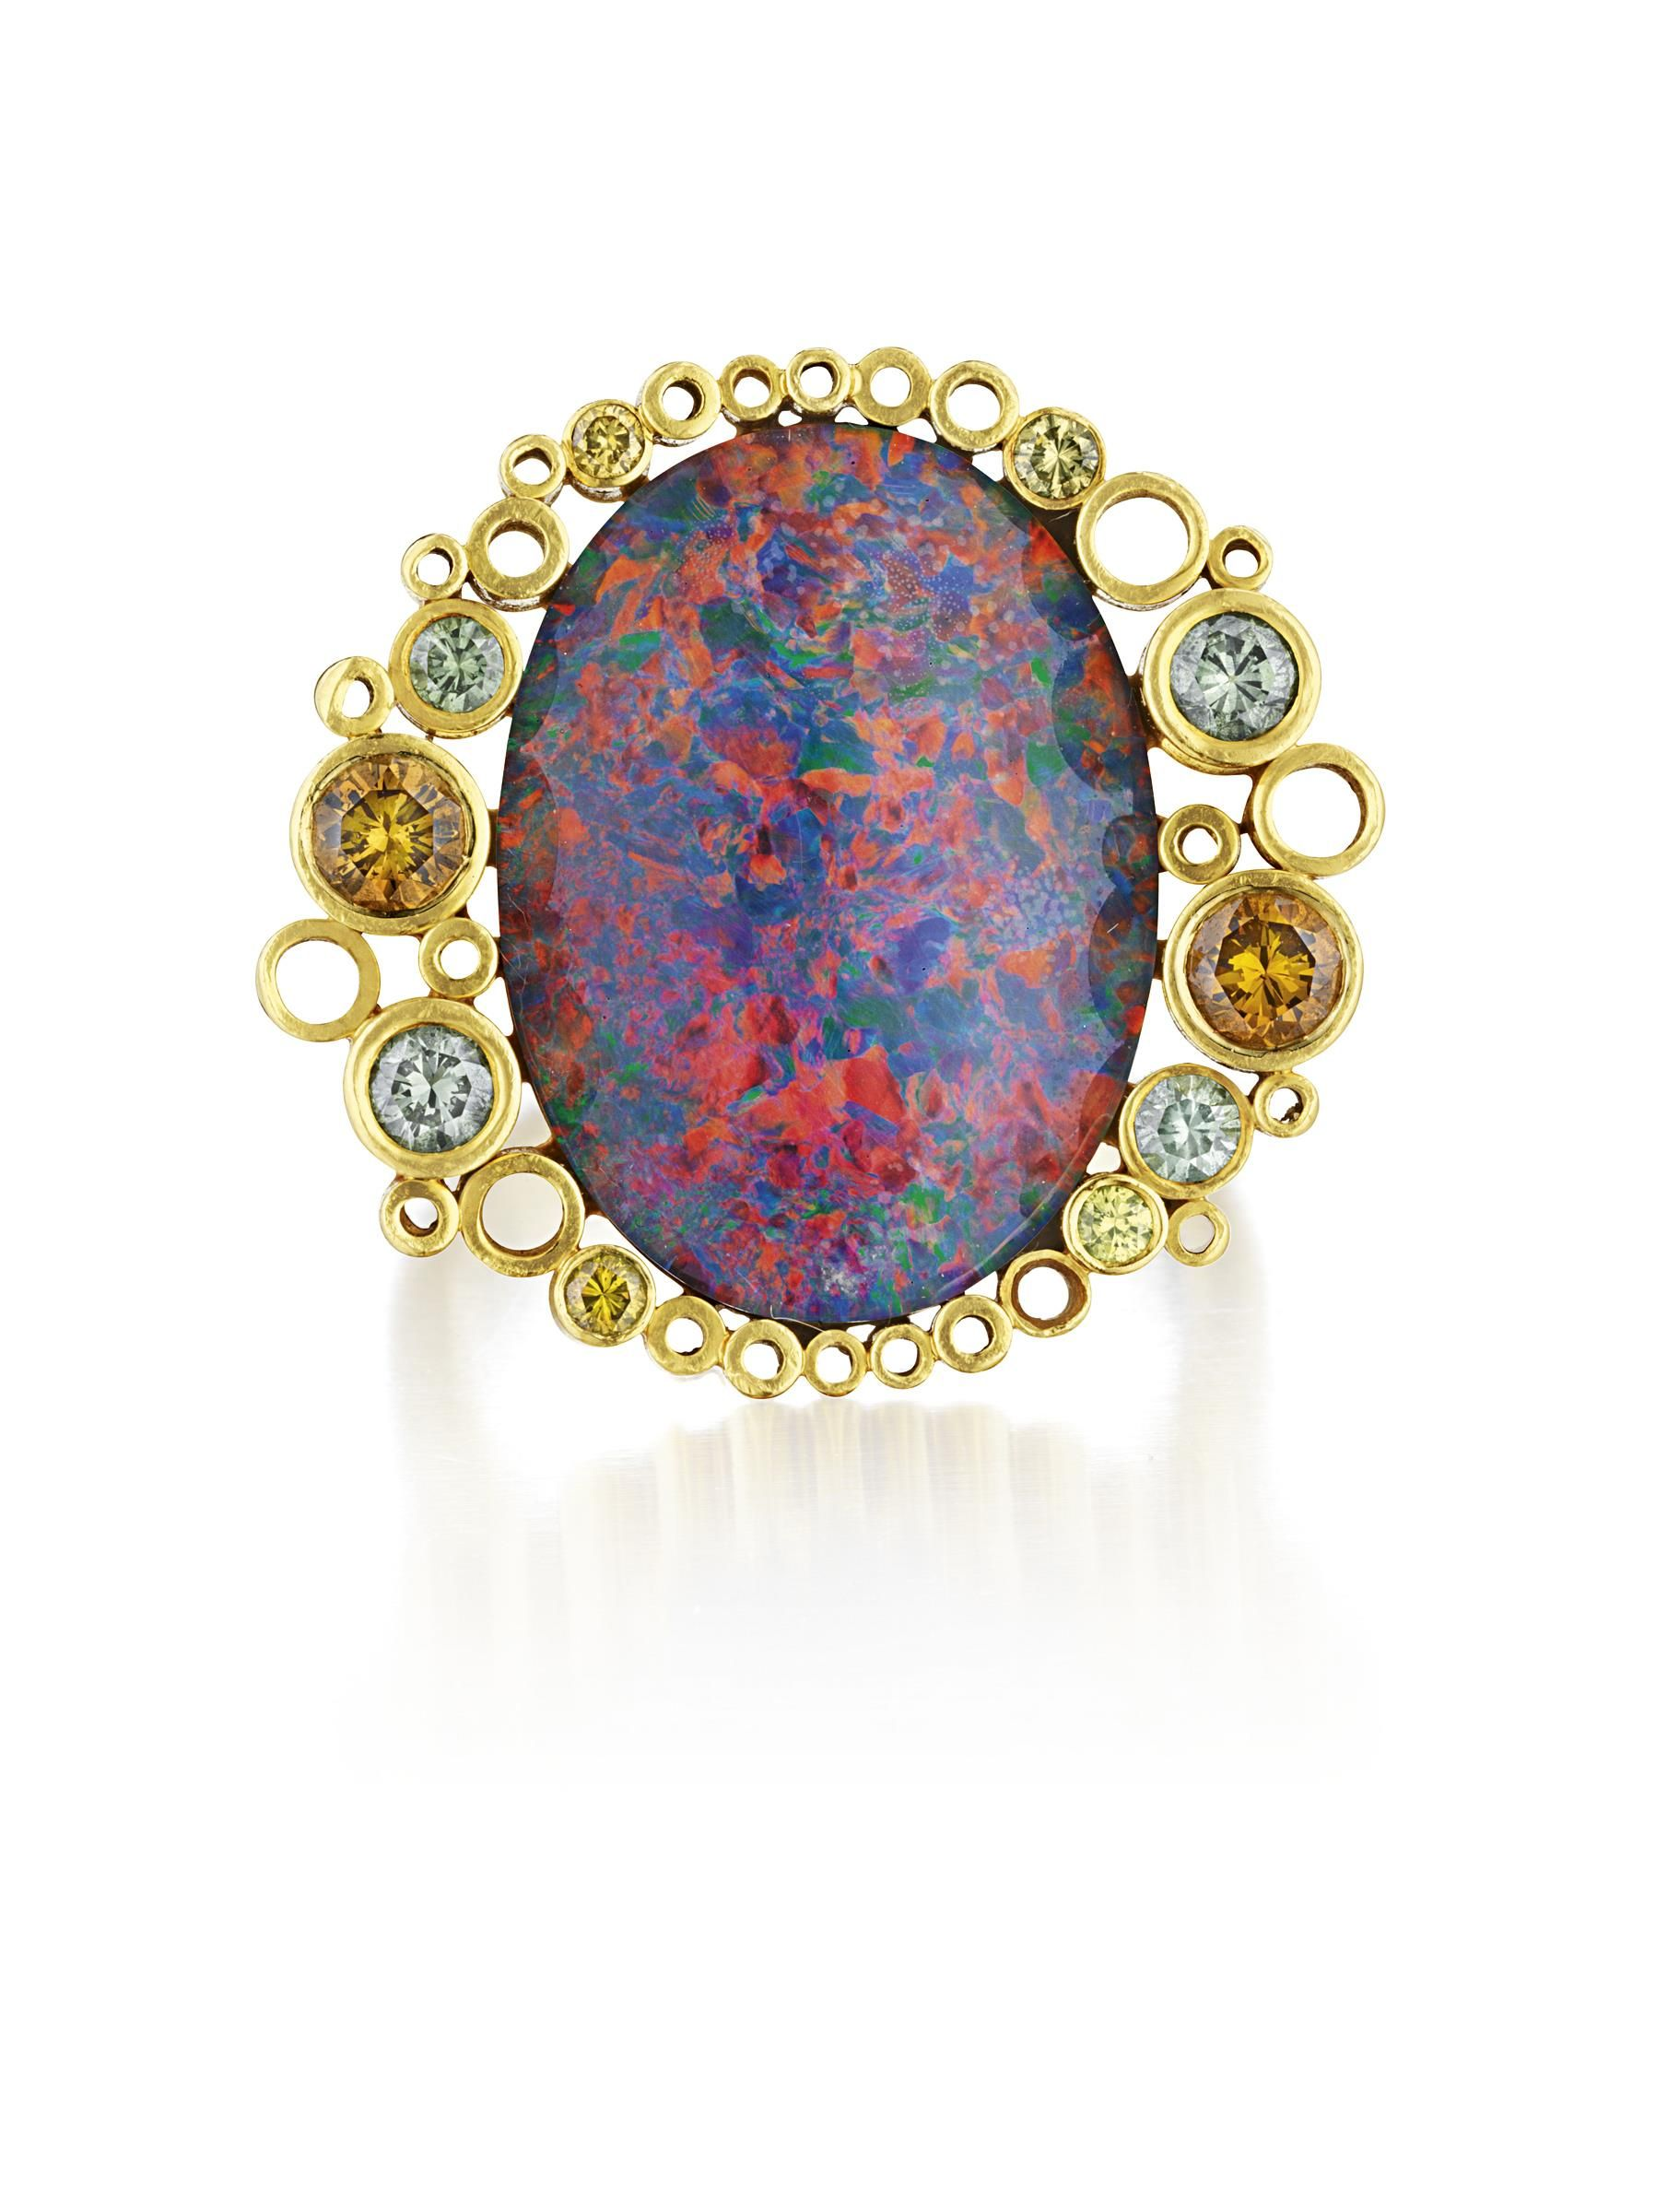 Cartier. An black opal and diamond ring  mounted in 18K yellow gold